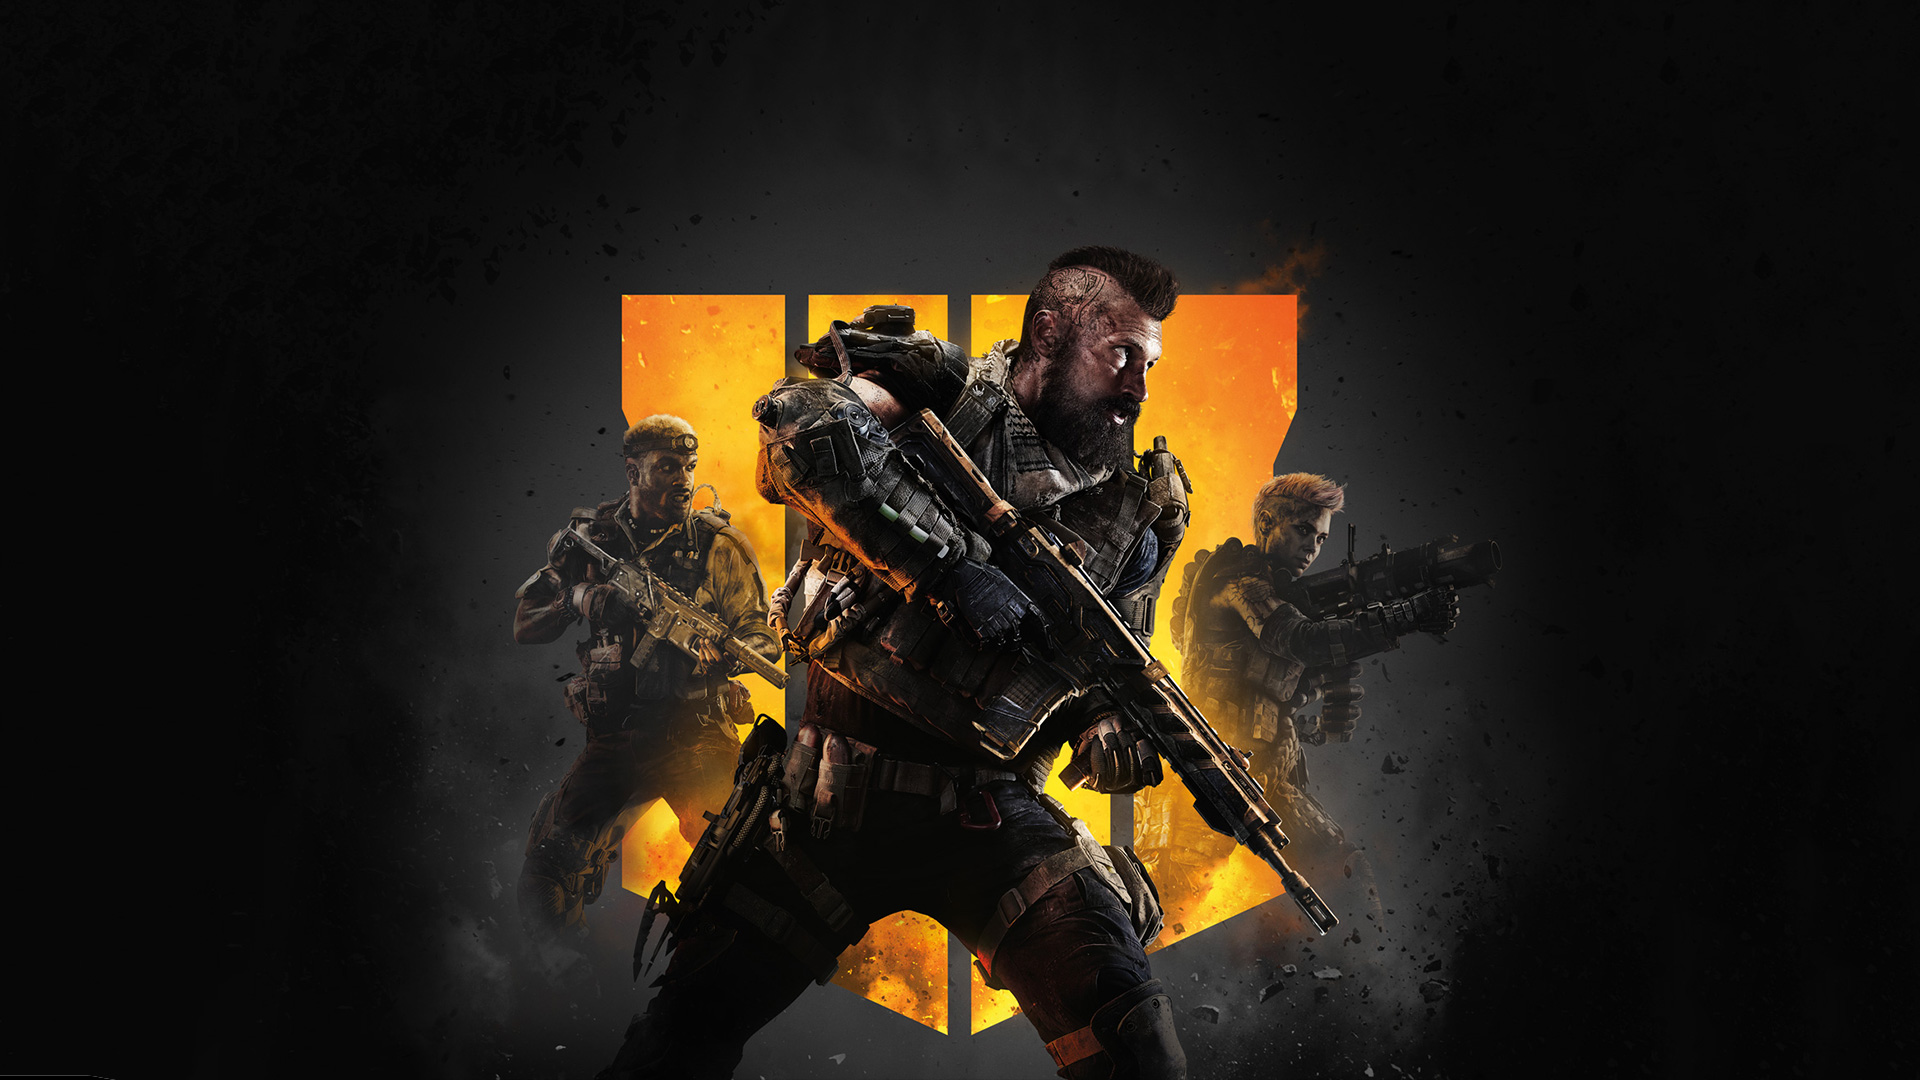 Call Of Duty Black Ops 4 2018 Hd Games 4k Wallpapers Images